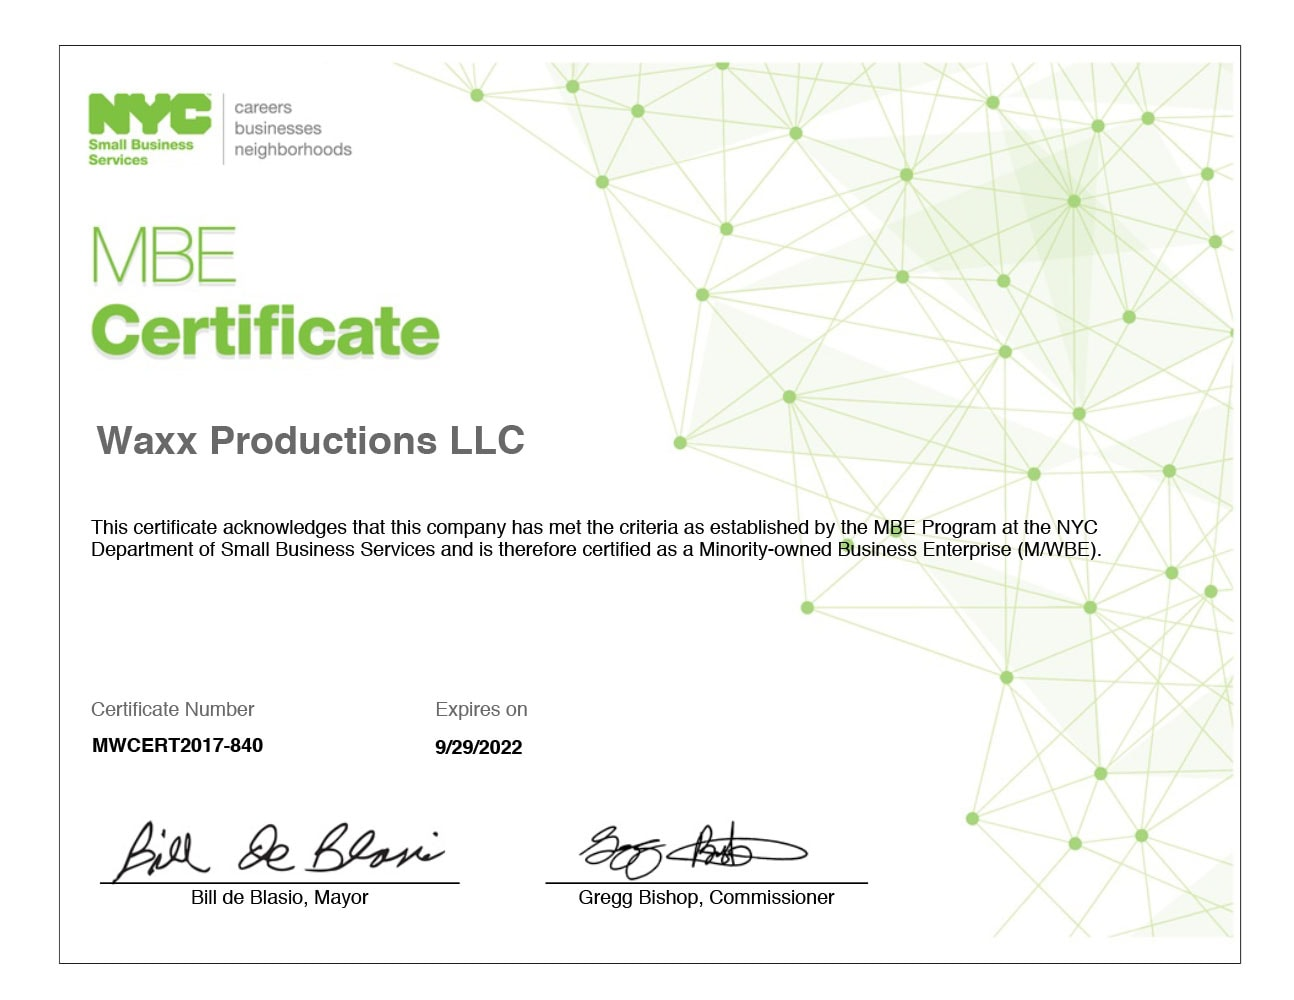 Waxx Productions LLC MBE Certificate